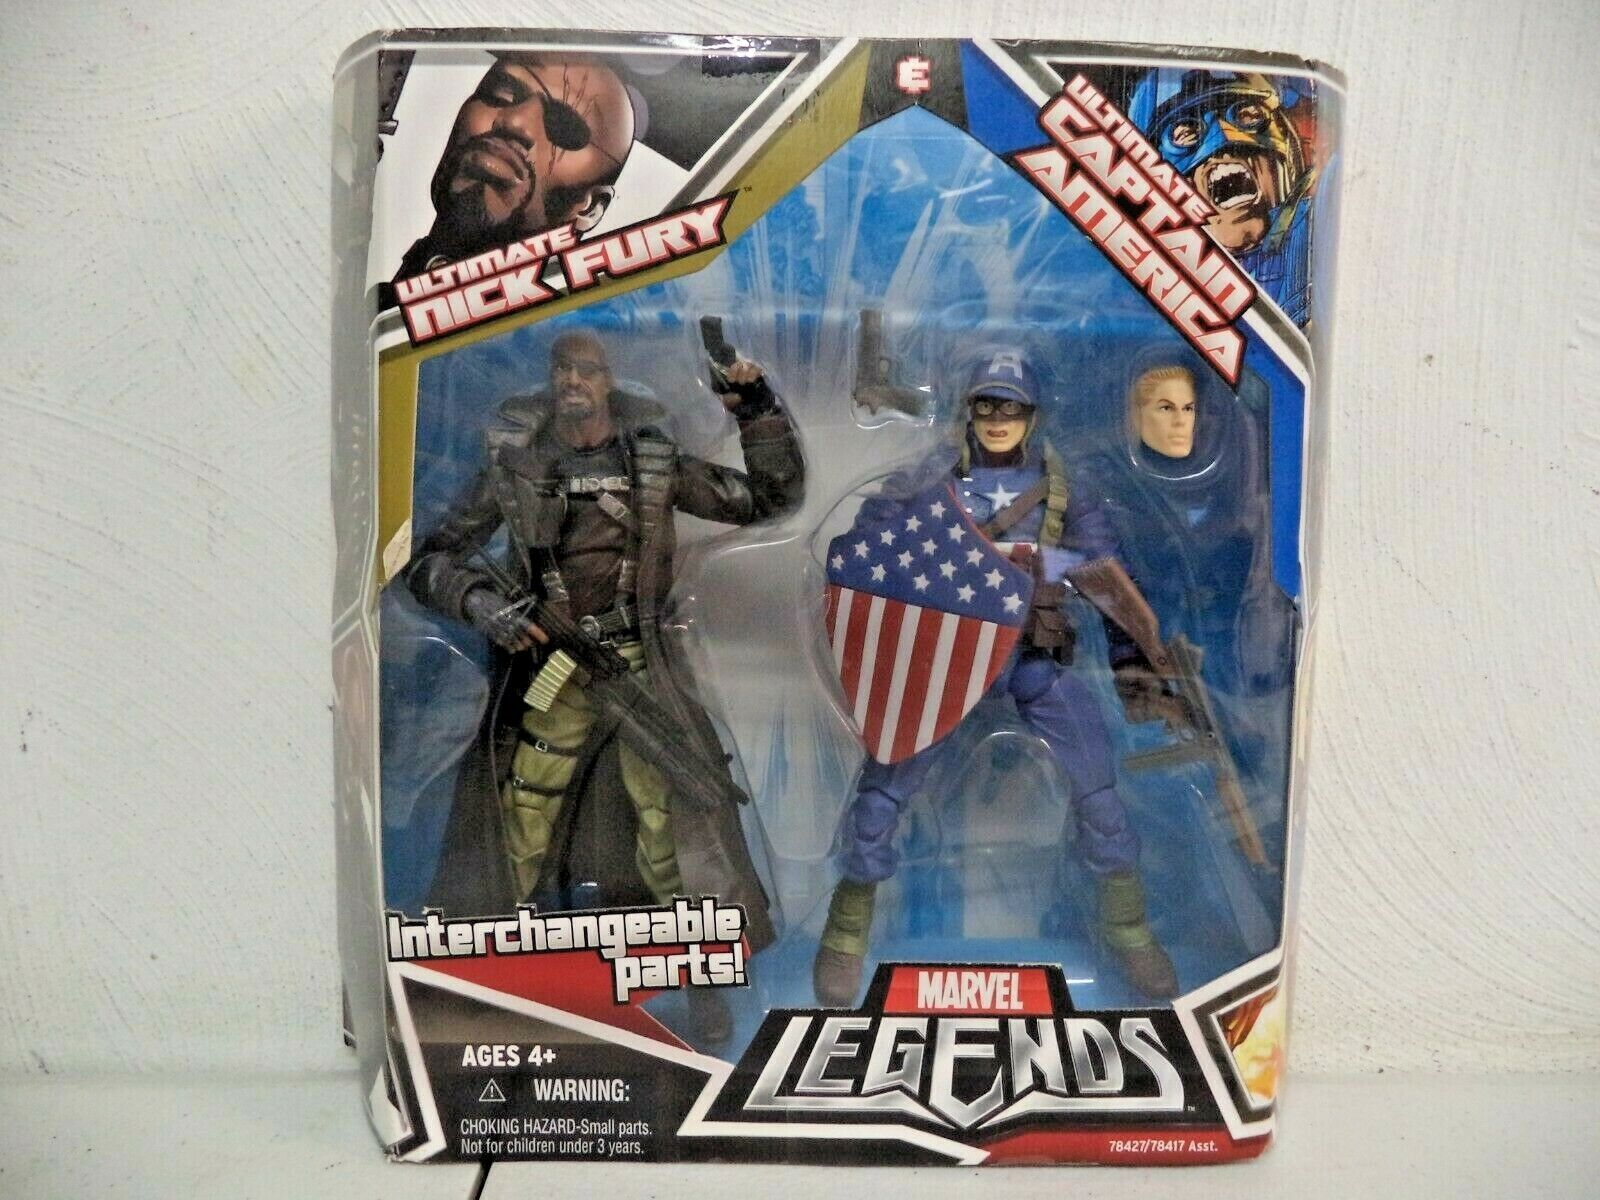 2008  HASBRO  MARVEL LEGENDS  ULTIMATE NICK FURY & CAPTAIN AMERICA  nuovo